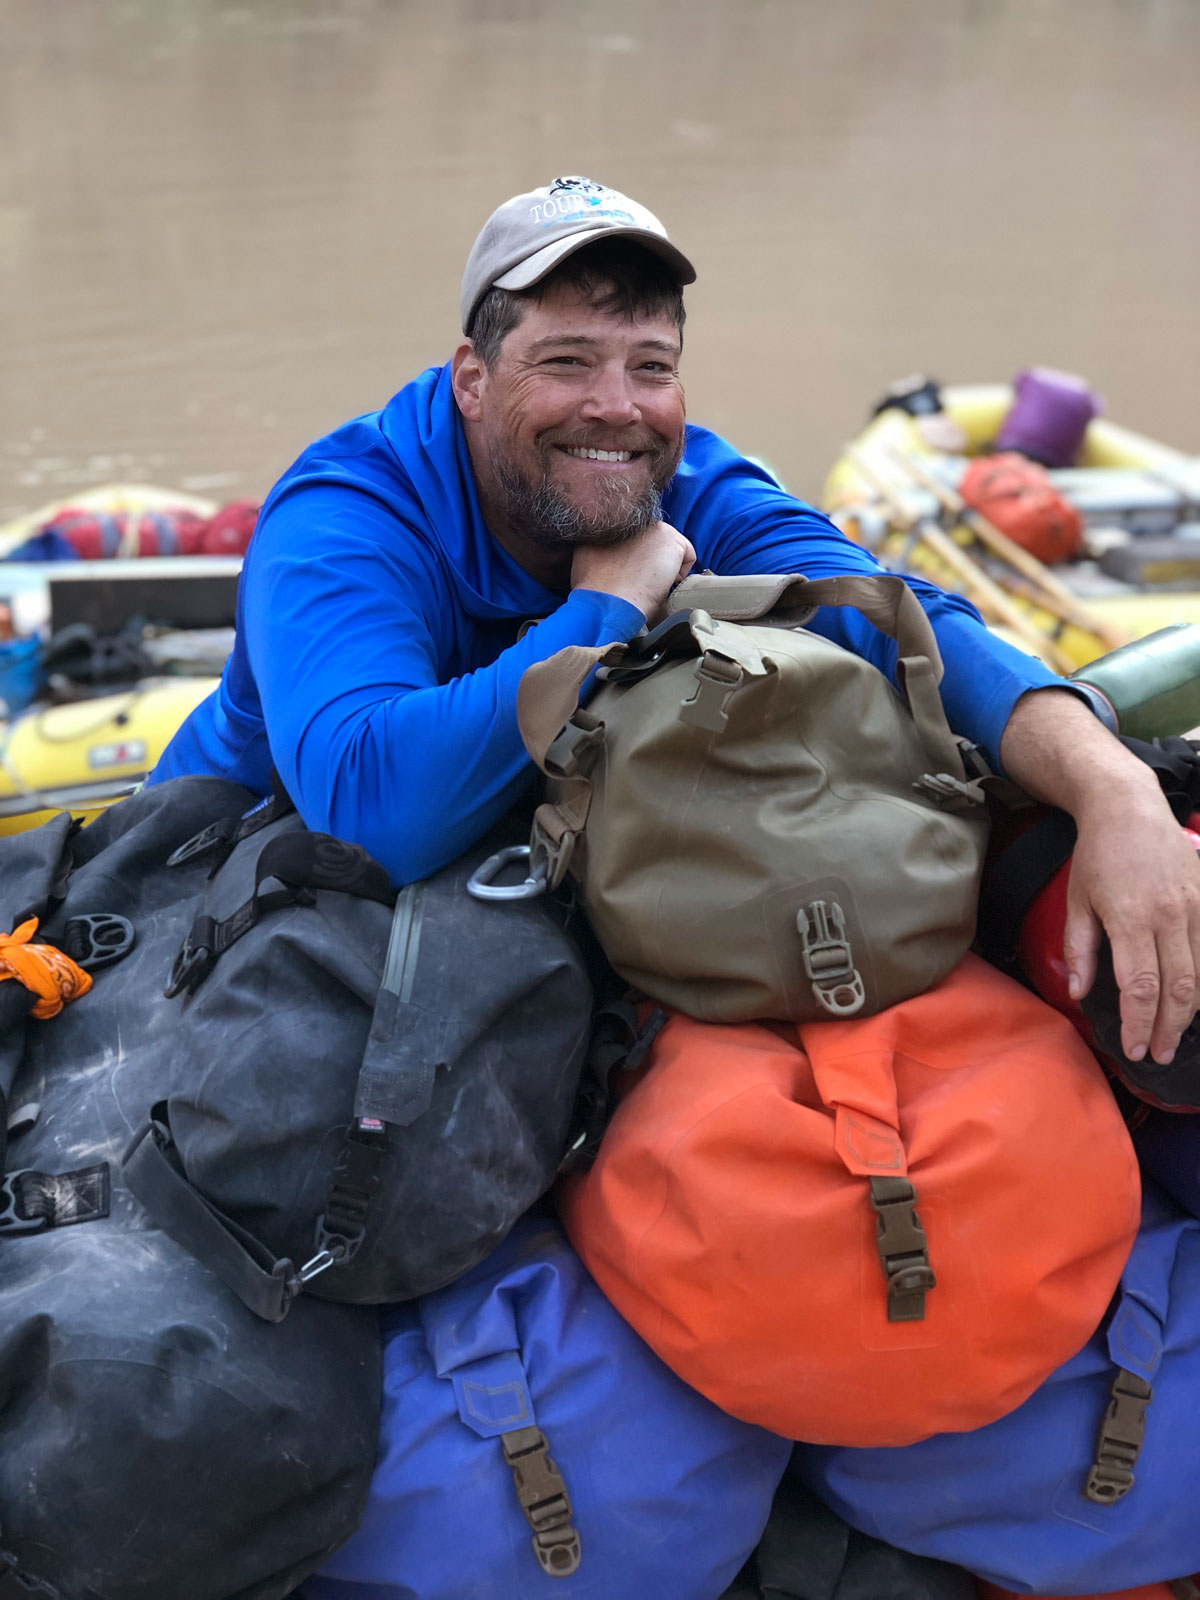 """Colorado river boatman John """"Bugs"""" Buggenhagen takes a moment to relax and a stack of Watershed of dry bags. © Adam Schallau..."""